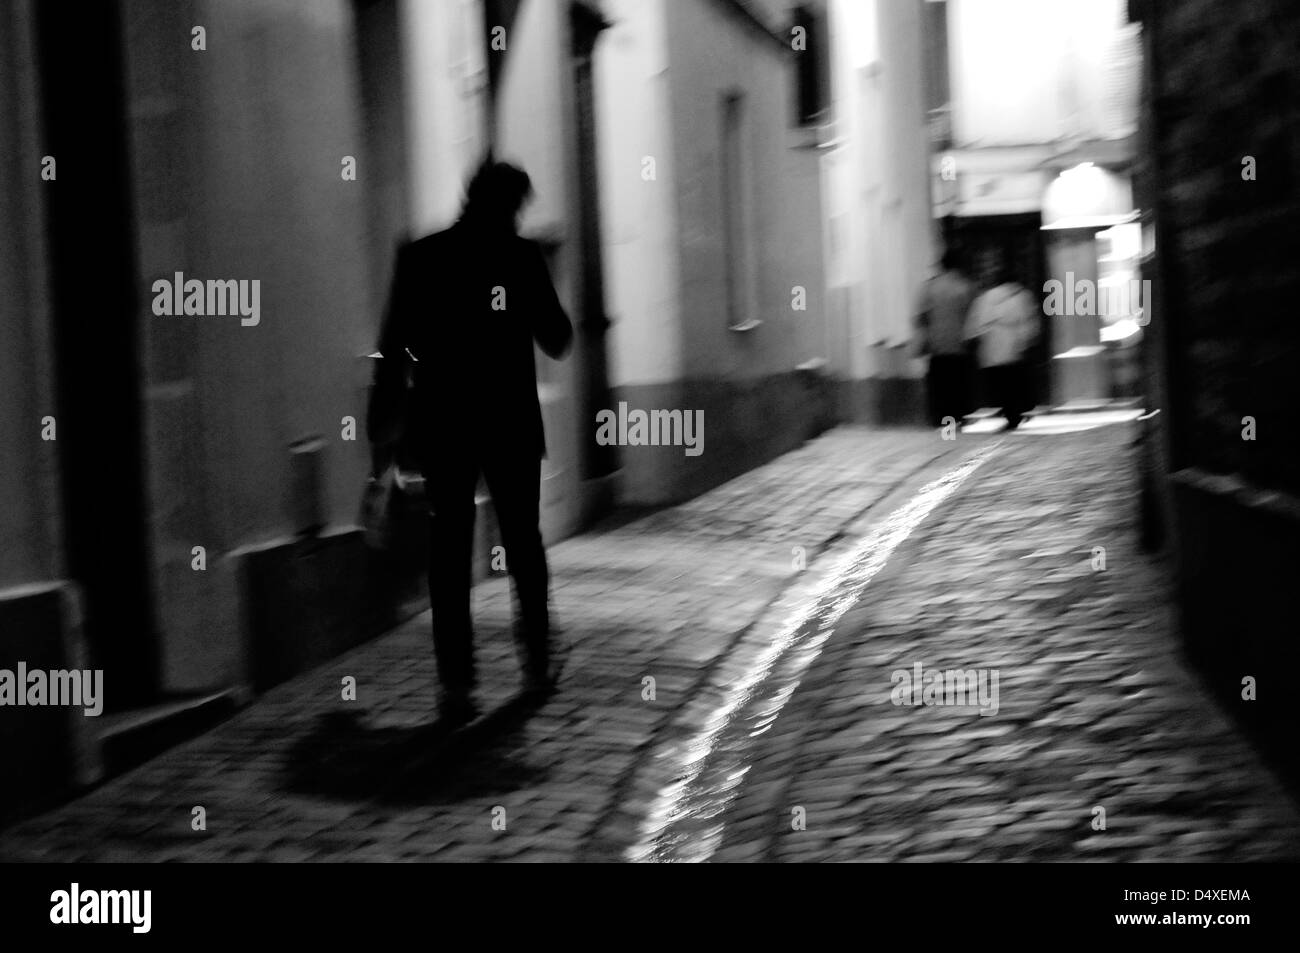 A man walks in a alleyway at night in Montmartre, Paris, France. - Stock Image